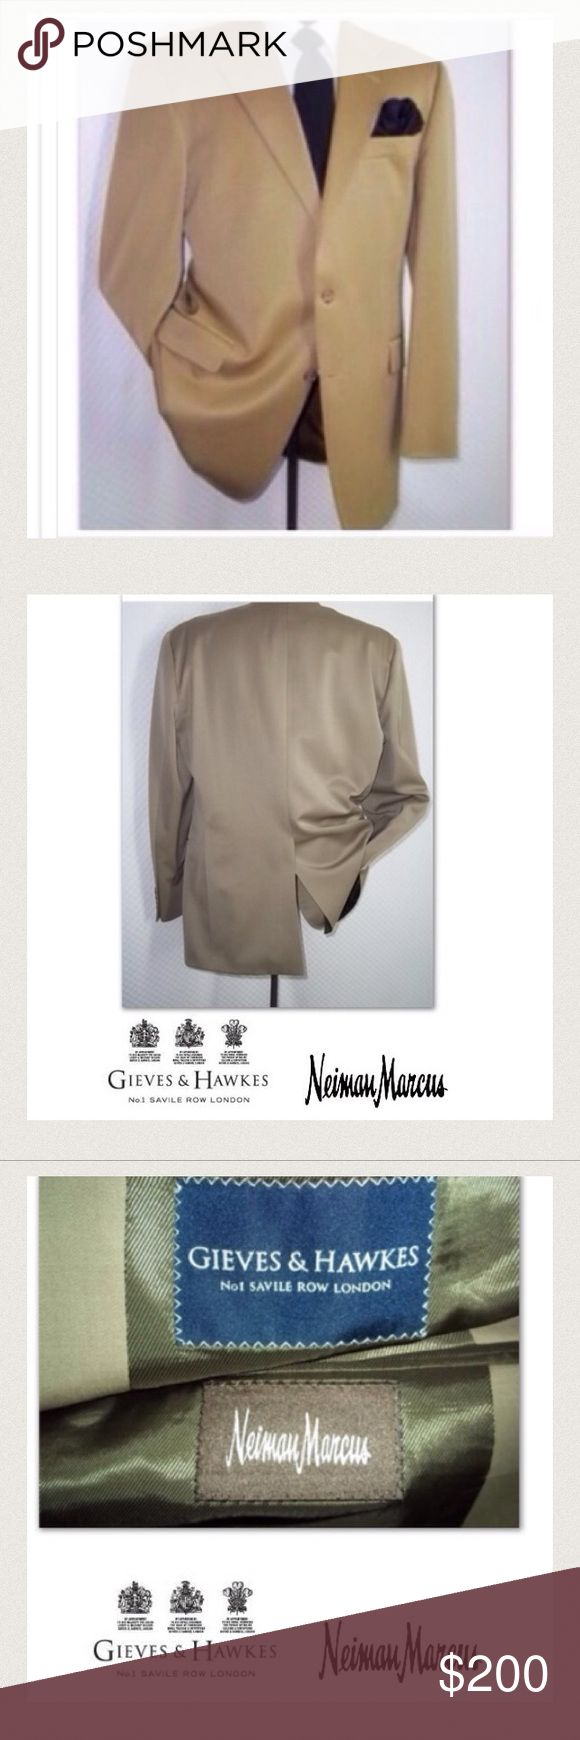 ❤️🌲FINAL SALE Mens Wool Blazer Neiman Marcus Gieves and Hawkes for Neiman Marcus Light Green 100% Wool two button Luxury Blazer size 44 Long Mens Very Nice Jacket!!! Great for formal events: dinners, work, parties sophisticated and classy weddings business gatherings Neiman Marcus Suits & Blazers